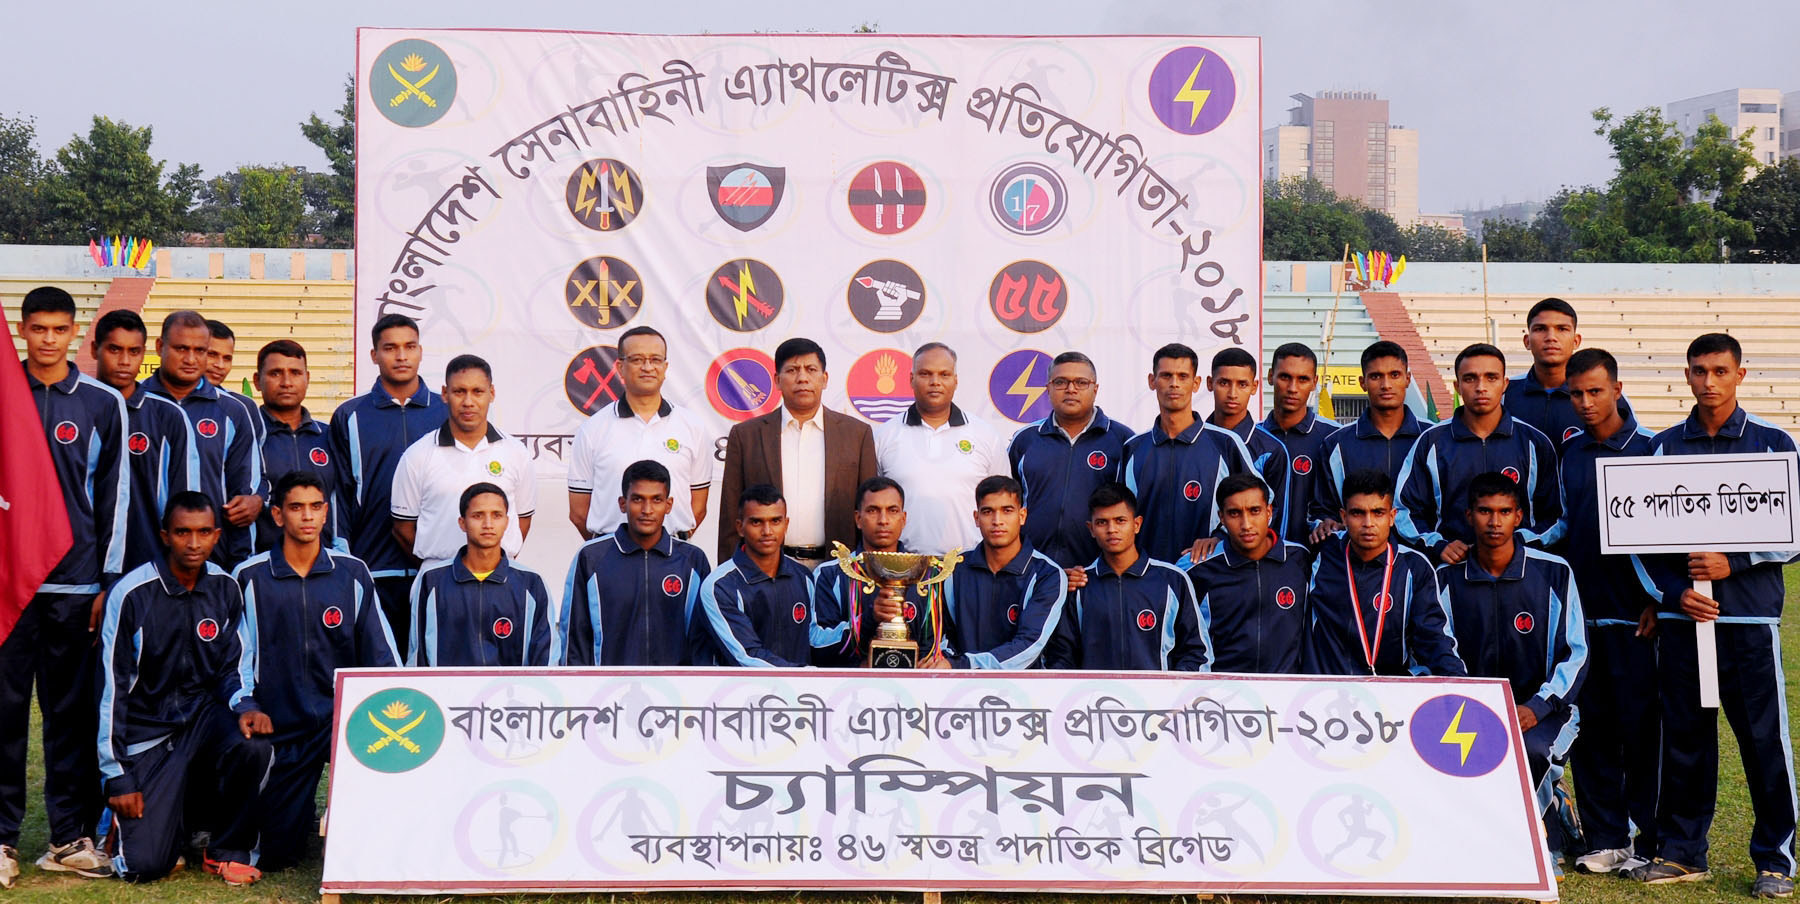 55th Infantry Division, the champions of the Bangladesh Army Athletics Competition with the chief guest Quartermaster General of Bangladesh Army Lieutenant General Md Shamsul Haque and other high officials of Bangladesh Army pose for a photo session at Army Swimming Complex in the city's Banani on Sunday.